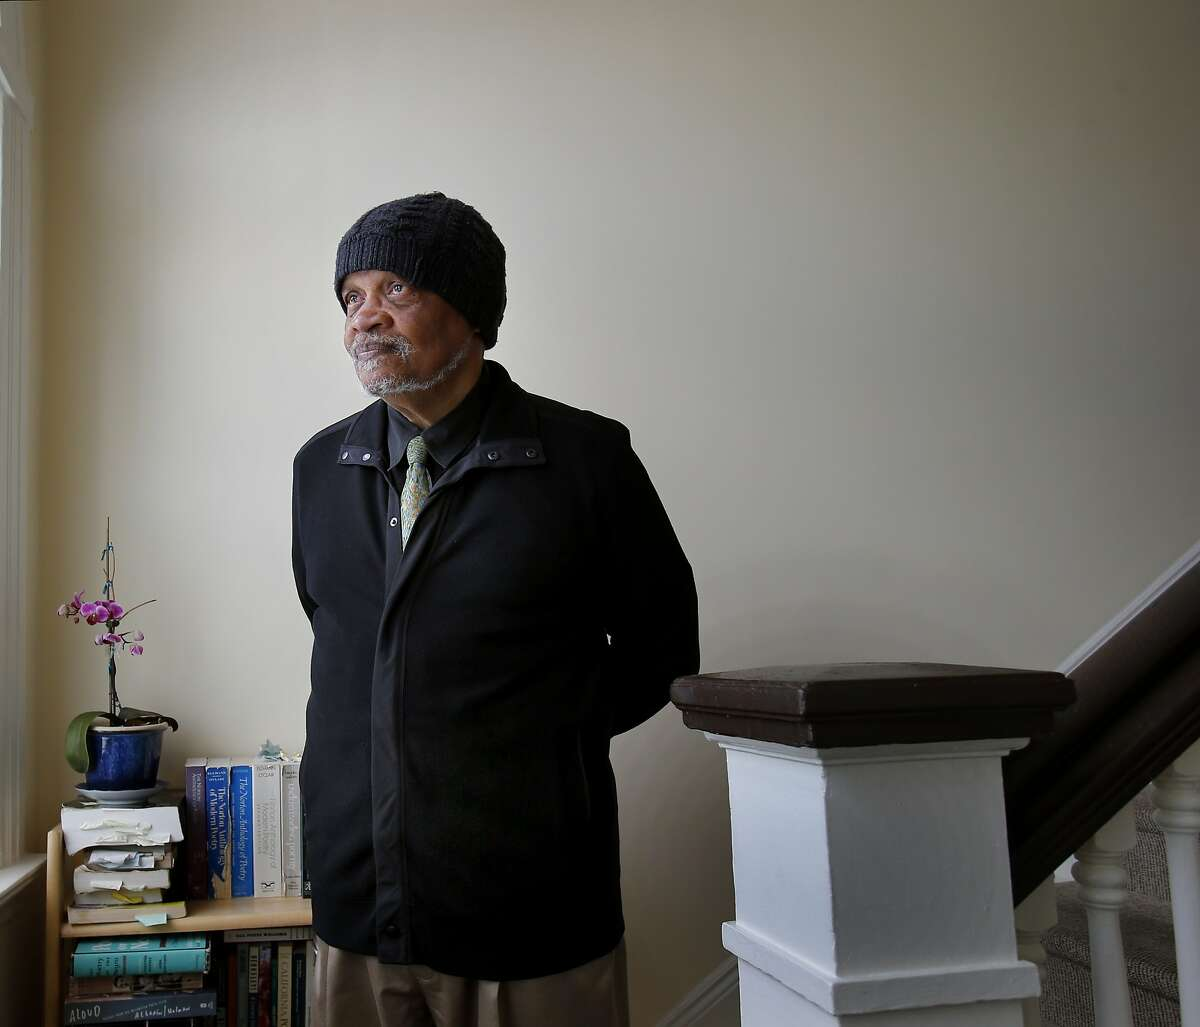 Poet Ishmael Reed stands on the staircase of his East Bay home Tuesday April 1, 2014. SFJAZZ Poet Laureate Ishmael Reed is heading a diverse group of poets for the first SFJAZZ Poetry festival.